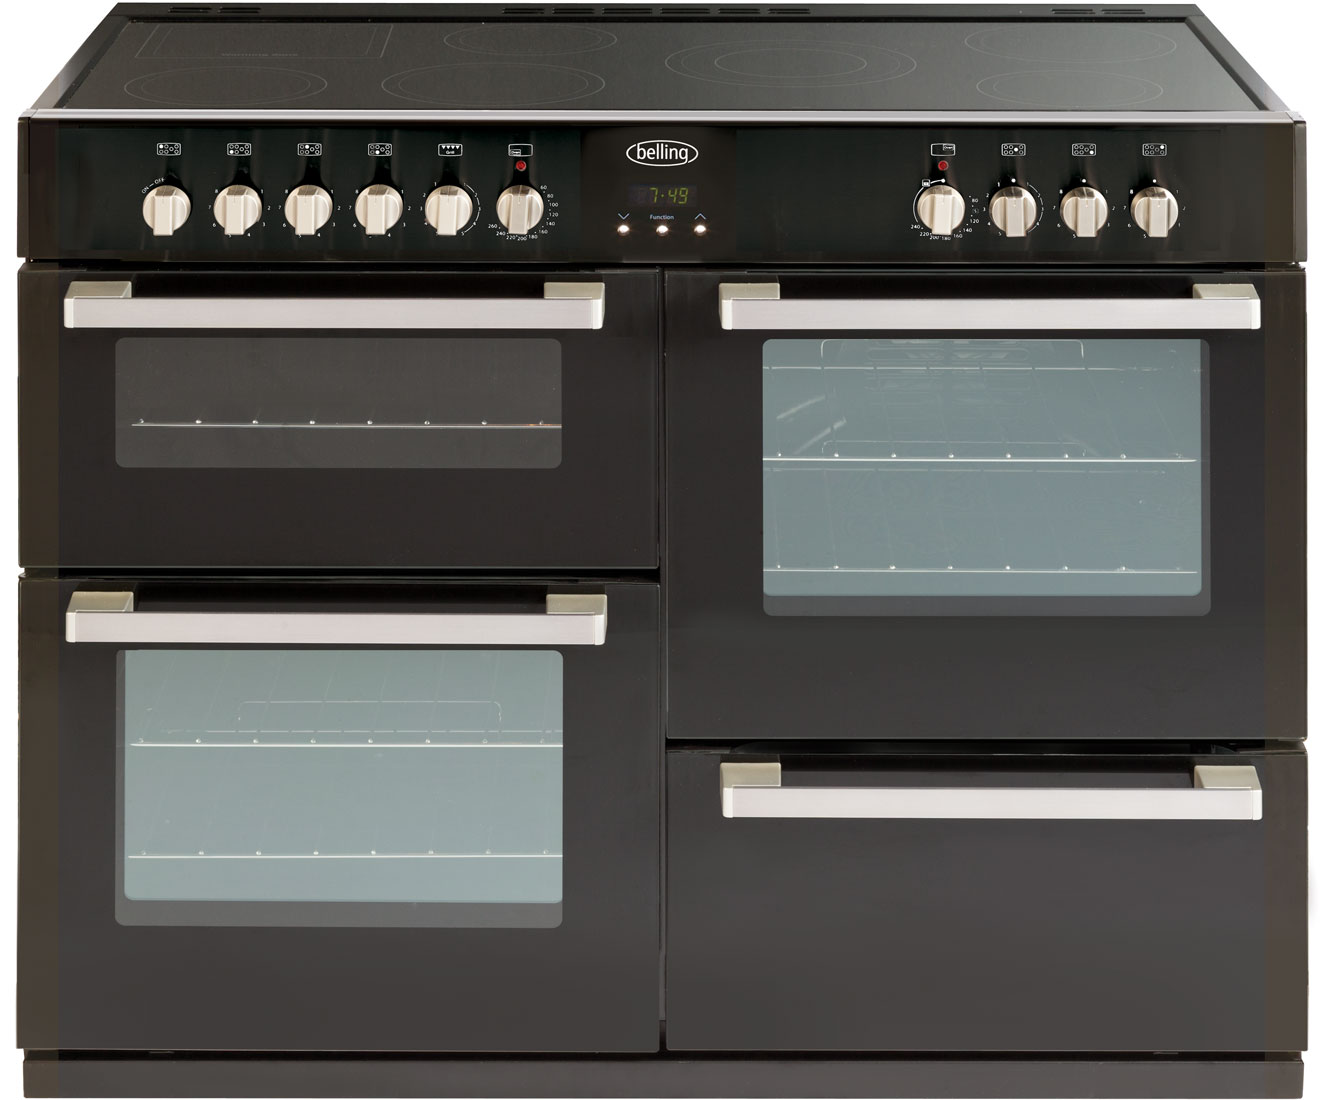 Belling DB4110E 110cm Electric Range Cooker with Ceramic Hob - Black